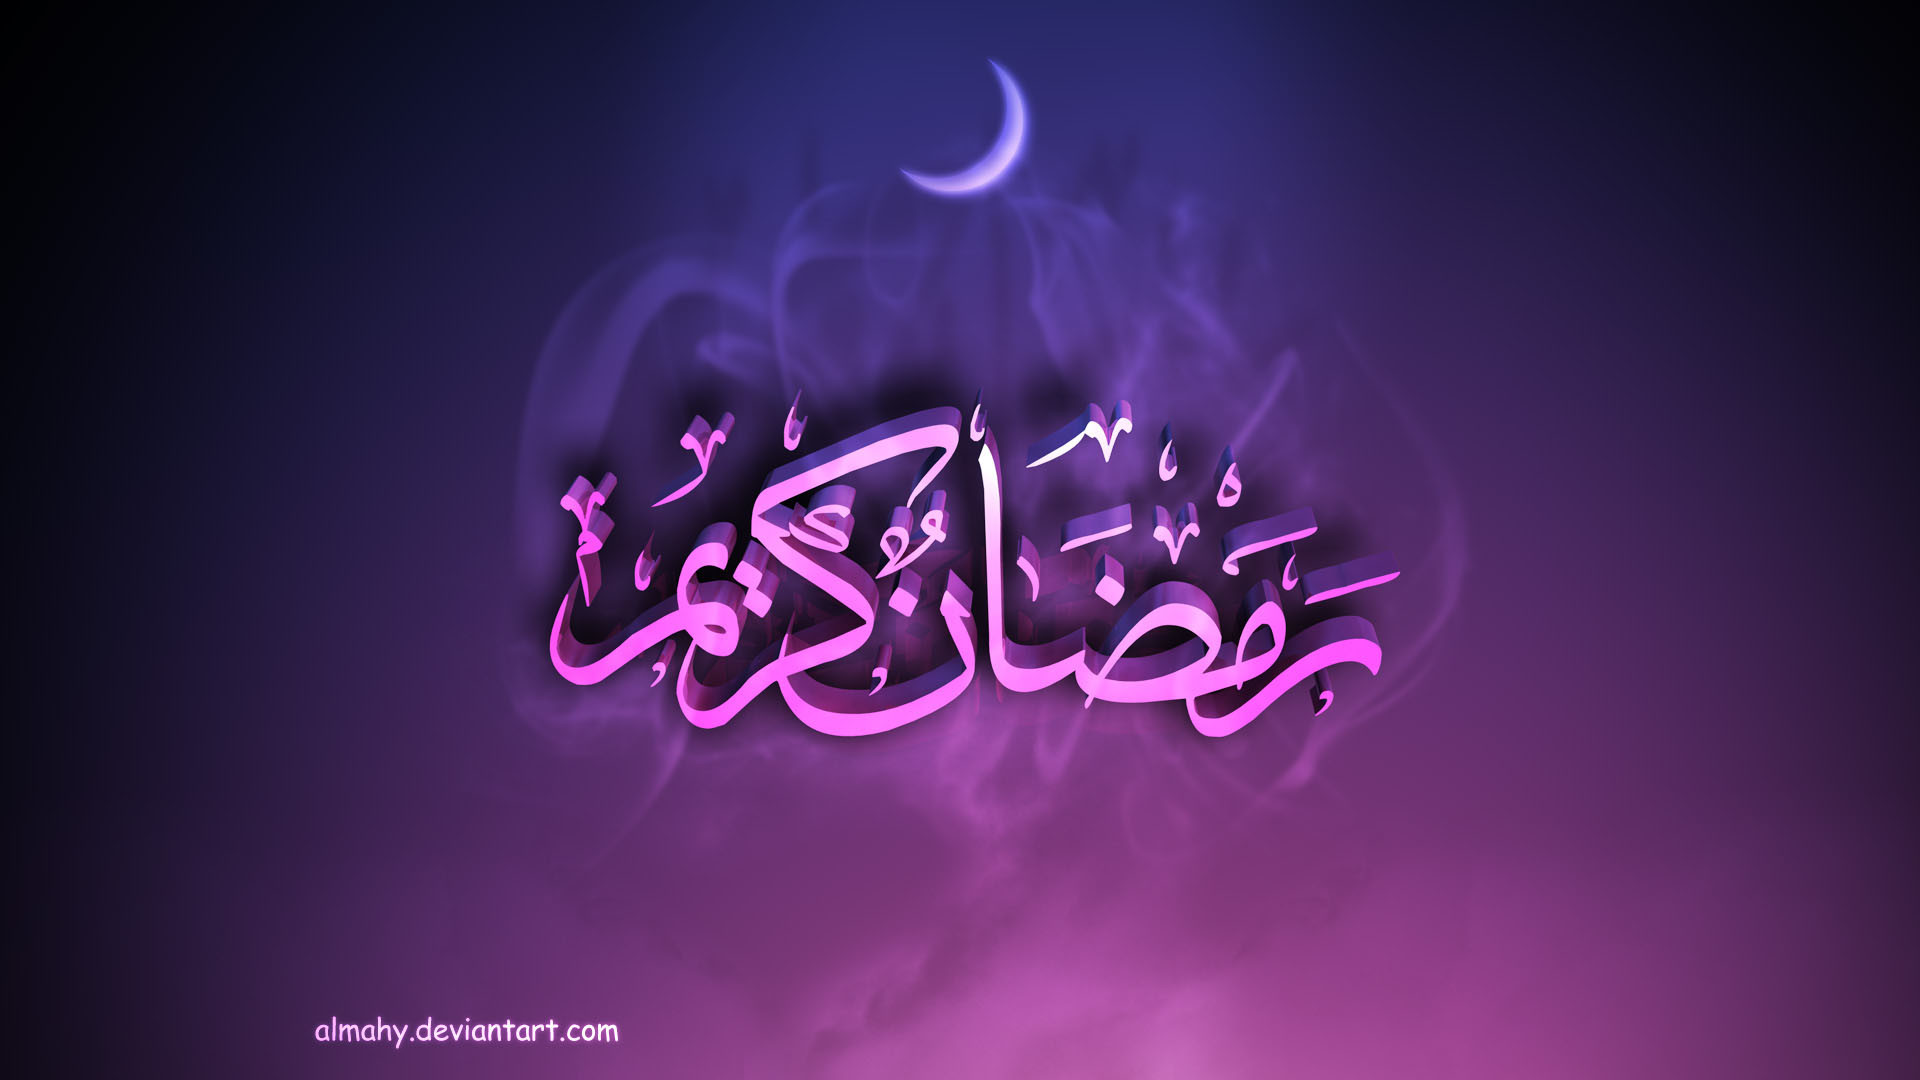 Res: 1920x1080, Ramadan Wallpapers Archive Pakistani Chat Room Without ... - HD Wallpapers